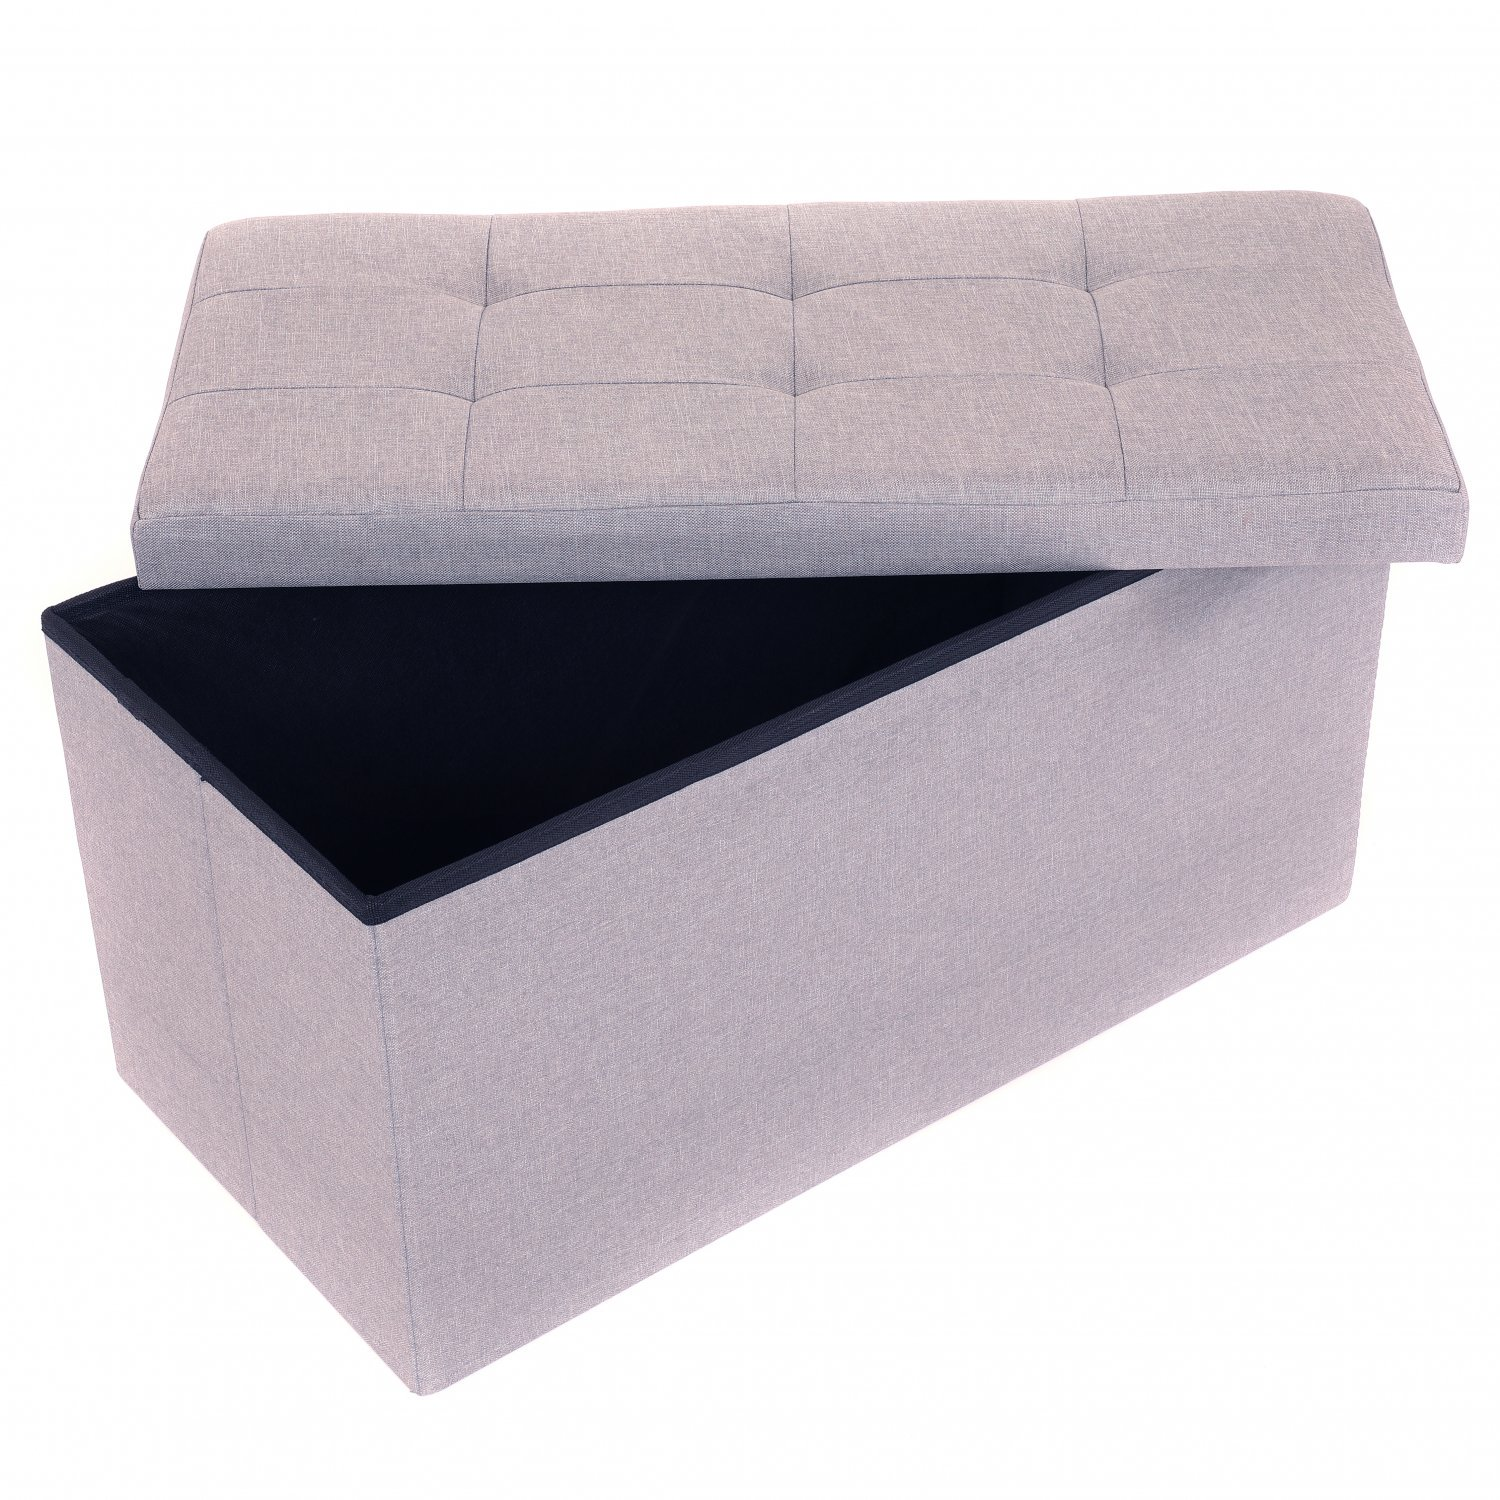 Medium Grey Linen Folding Ottoman Storage Chest Box Seat Bench - Click Image to Close